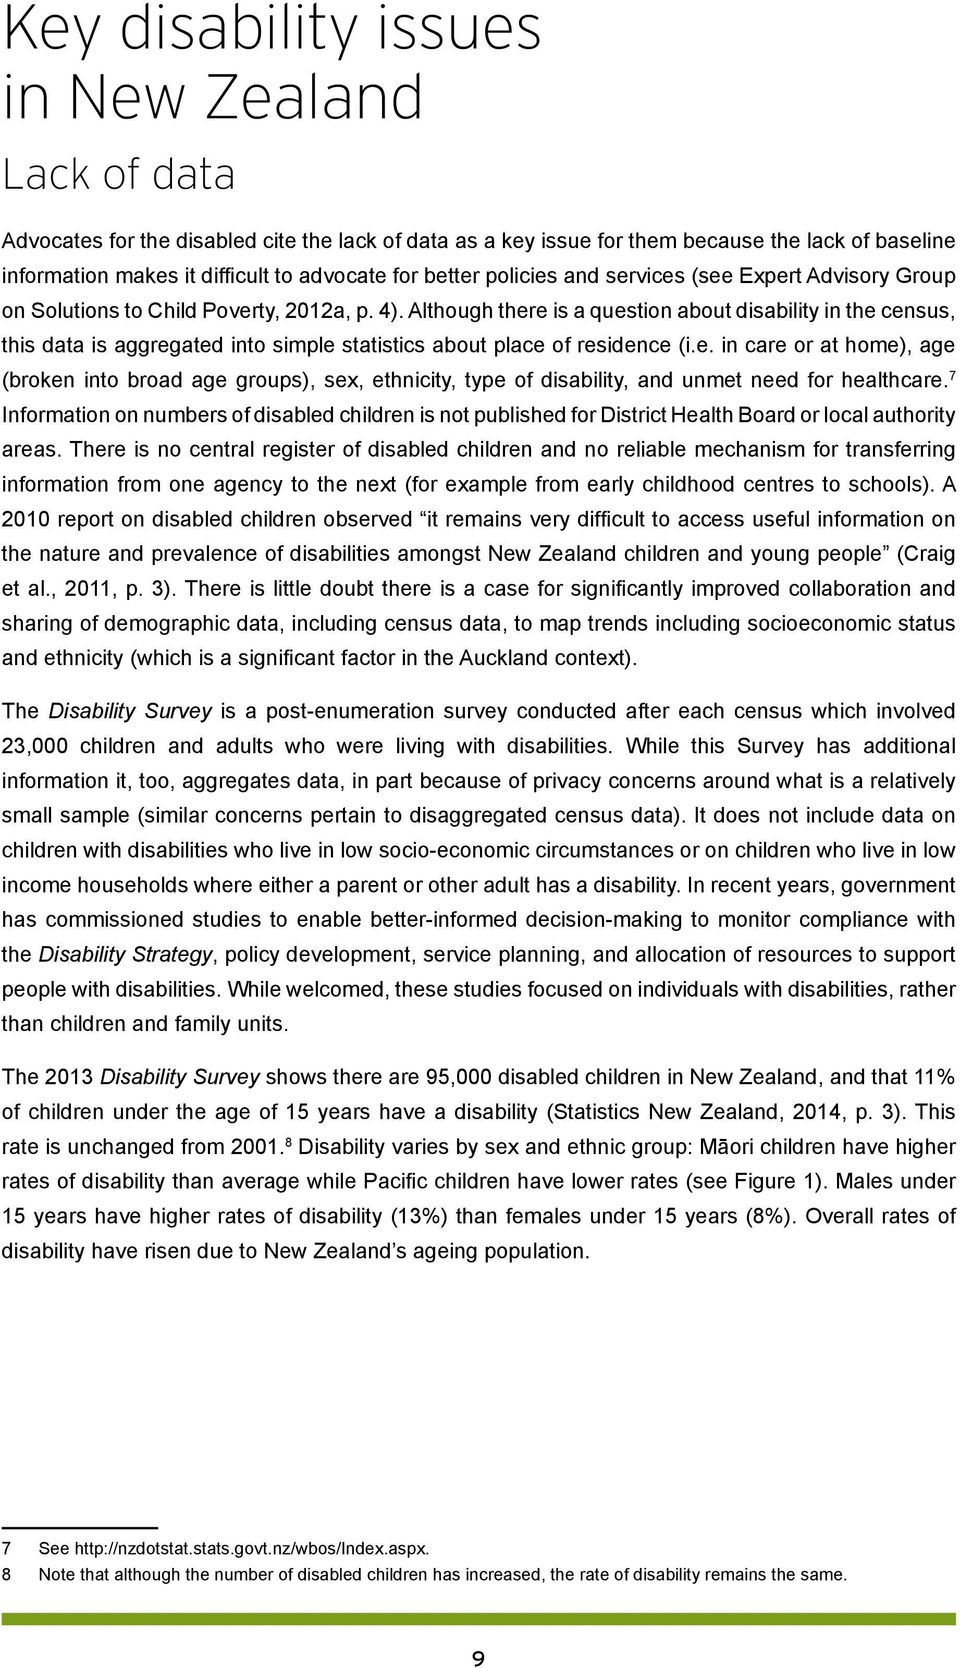 Although there is a question about disability in the census, this data is aggregated into simple statistics about place of residence (i.e. in care or at home), age (broken into broad age groups), sex, ethnicity, type of disability, and unmet need for healthcare.